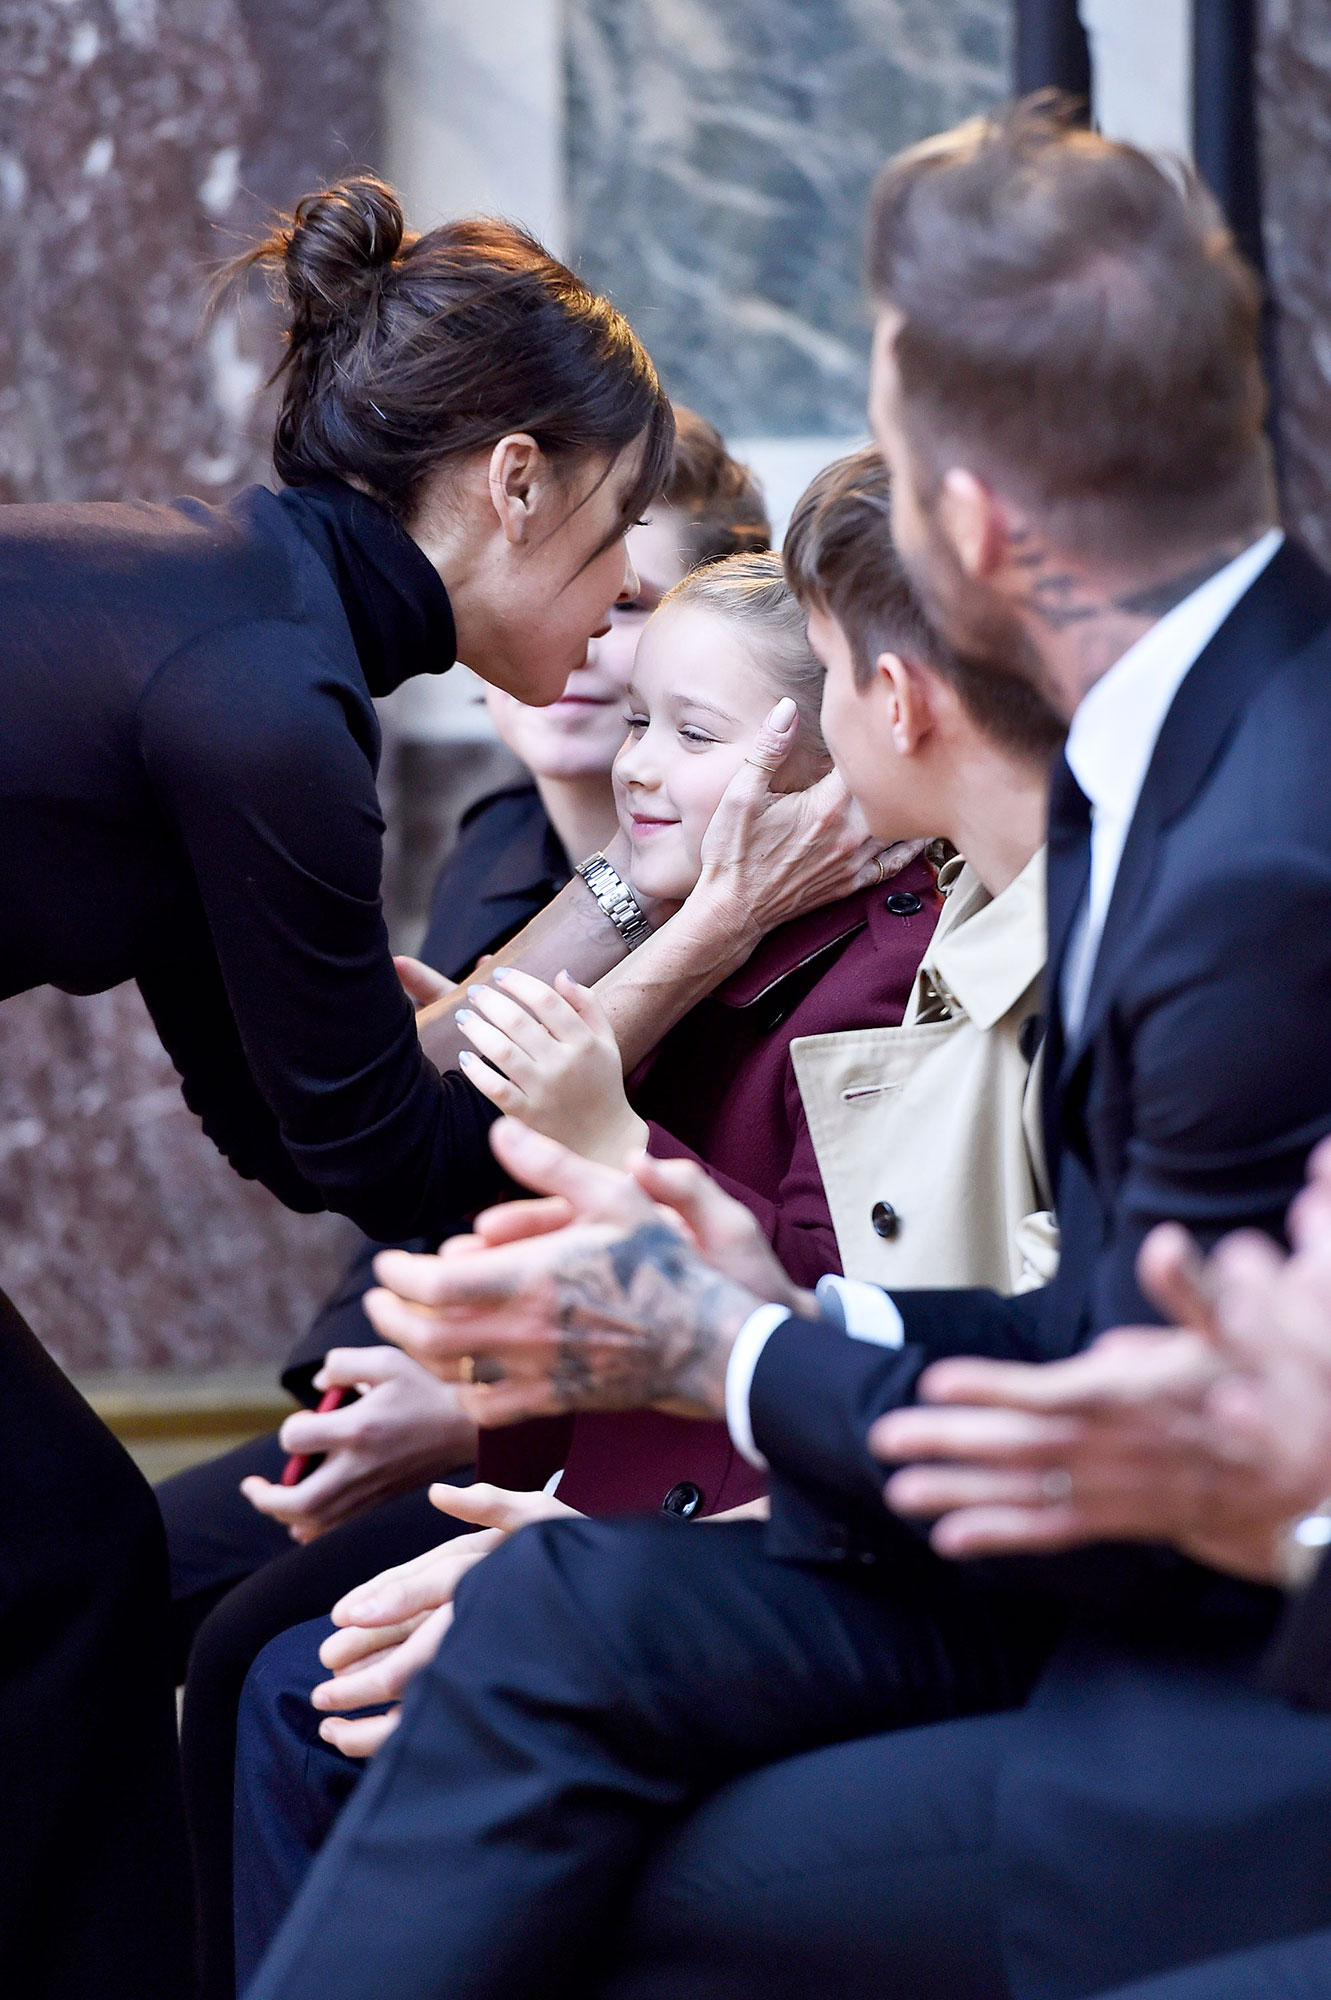 7-Year-Old Harper Beckham Gets a Clean Product Facial From Dr. Barbara Sturm - Fashion designer Victoria Beckham kisses her daughter Harper while her husband David Beckham looks on at the Victoria Beckham Autumn Winter 2018 fashion show during New York Fashion Week on February 10, 2018 in New York, United States.